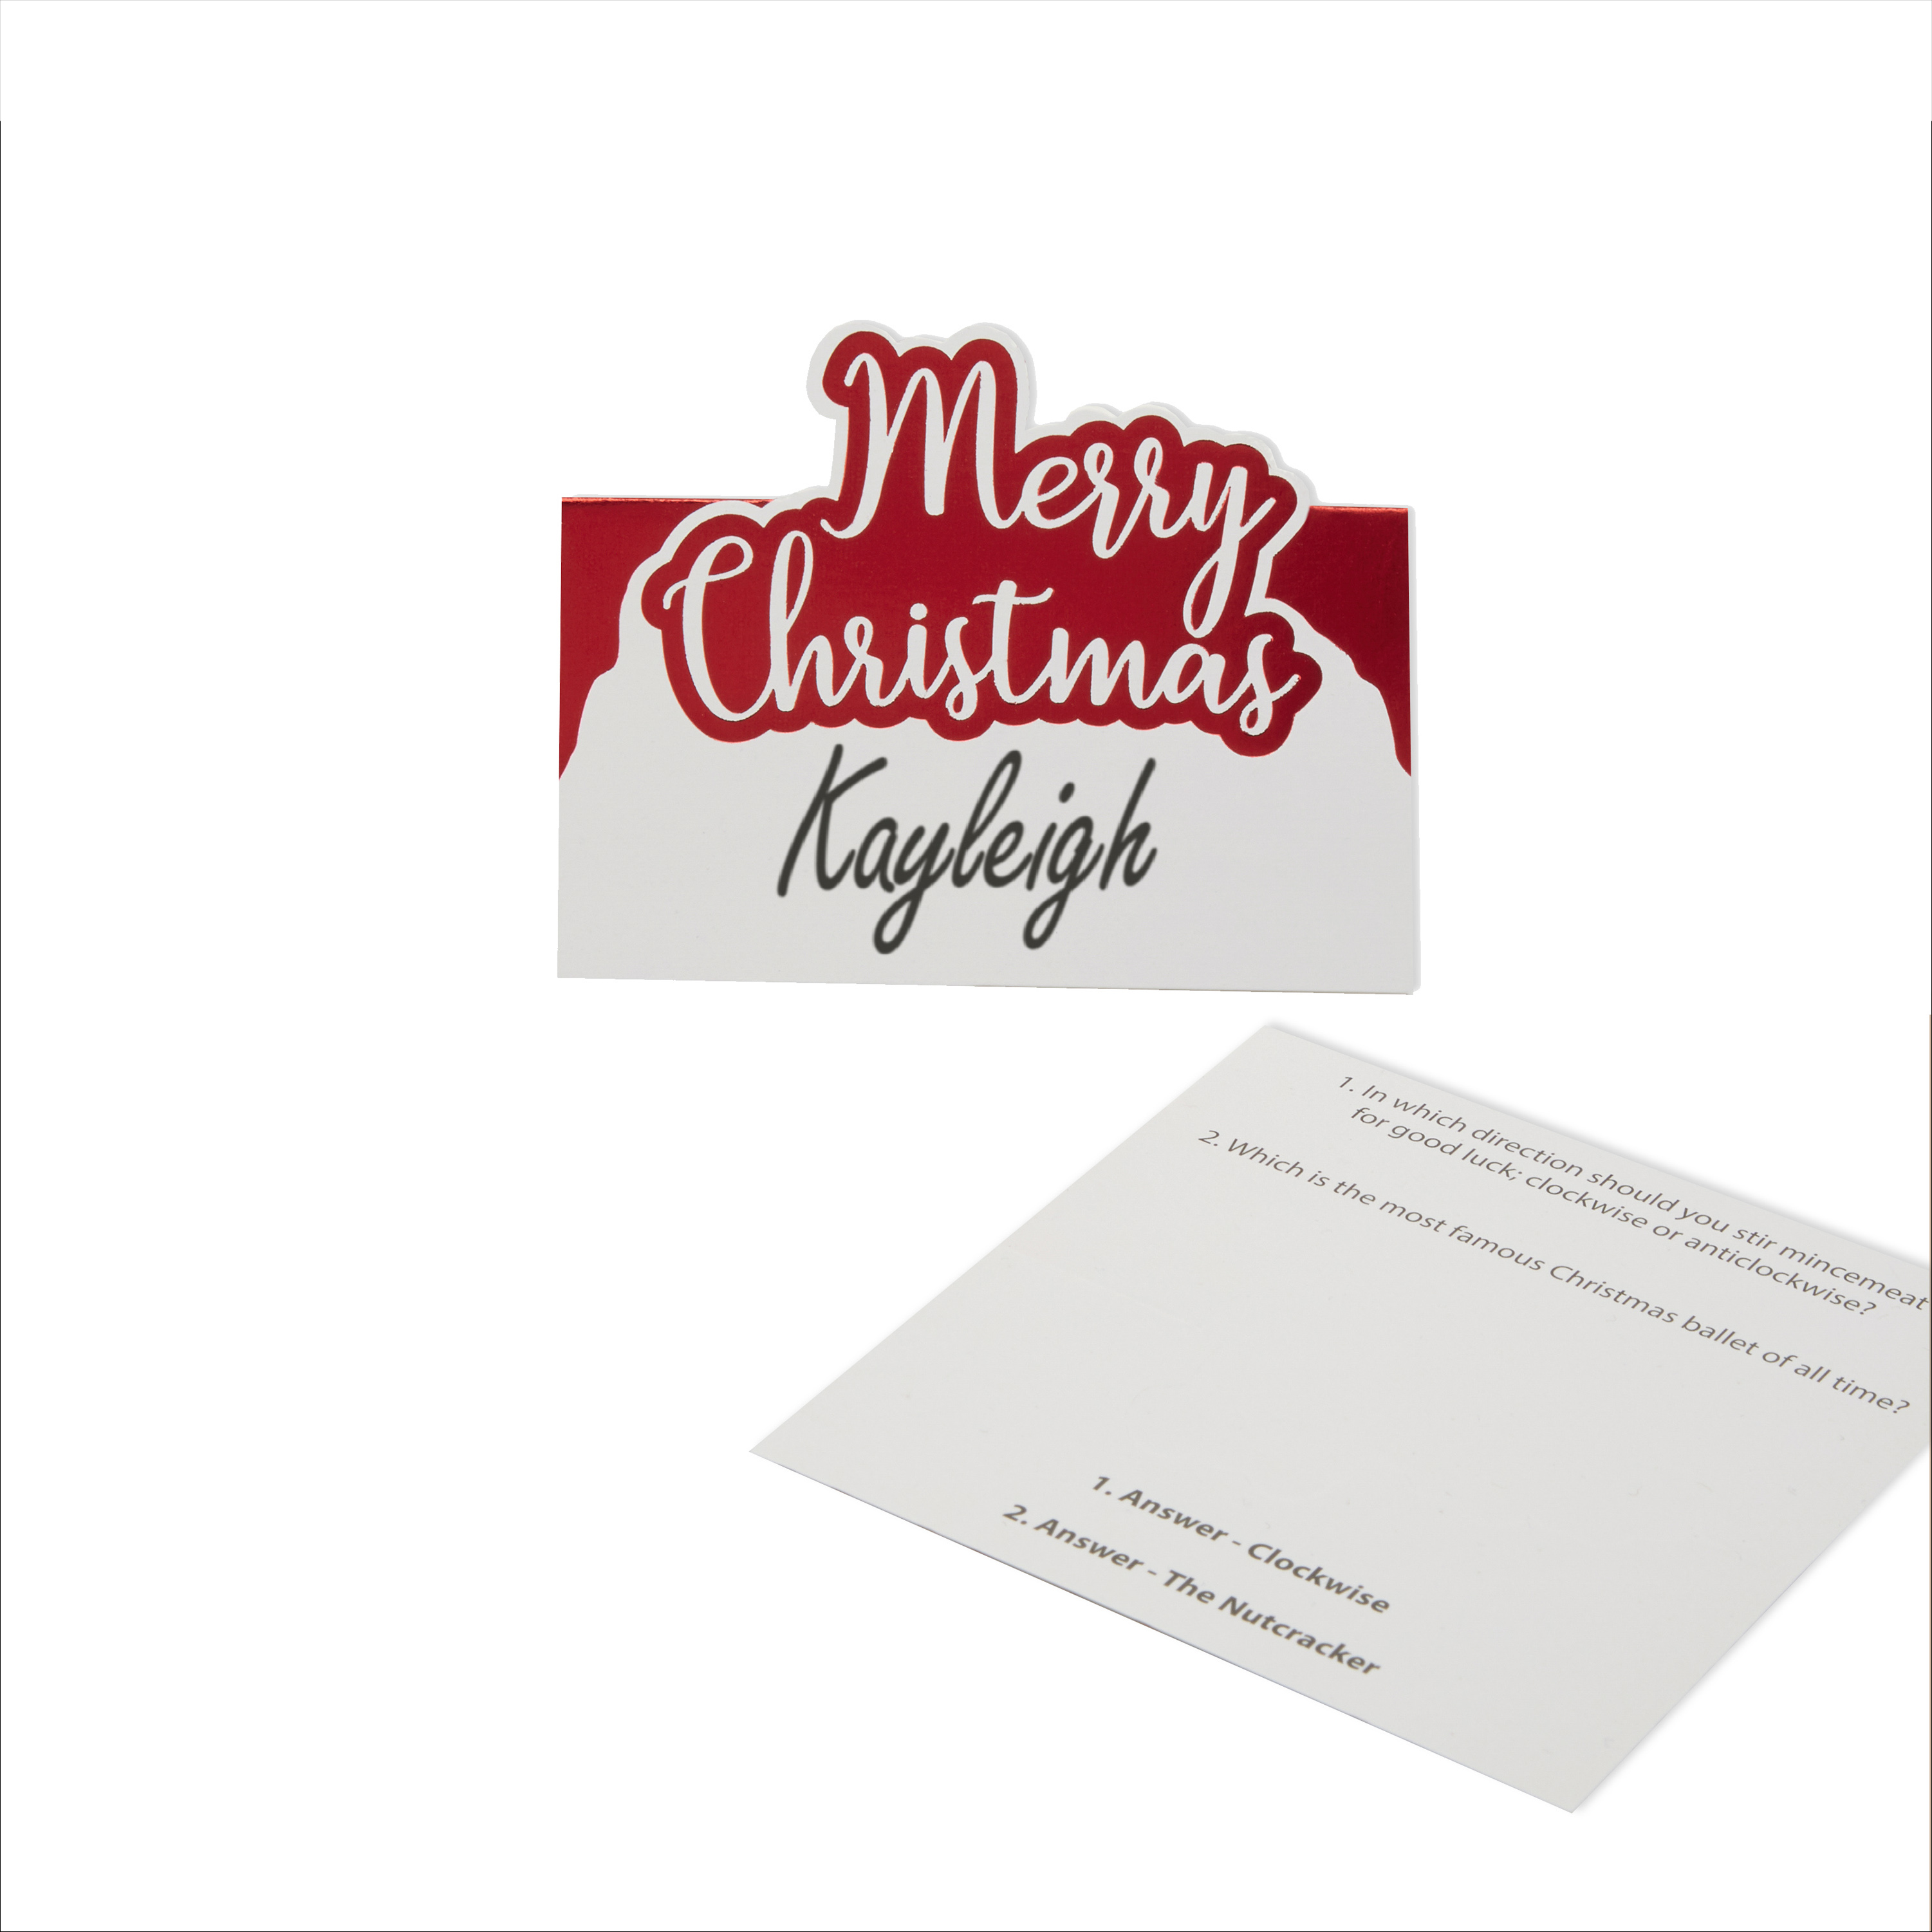 Merry Christmas - Trivia Place Cards - Red Foil